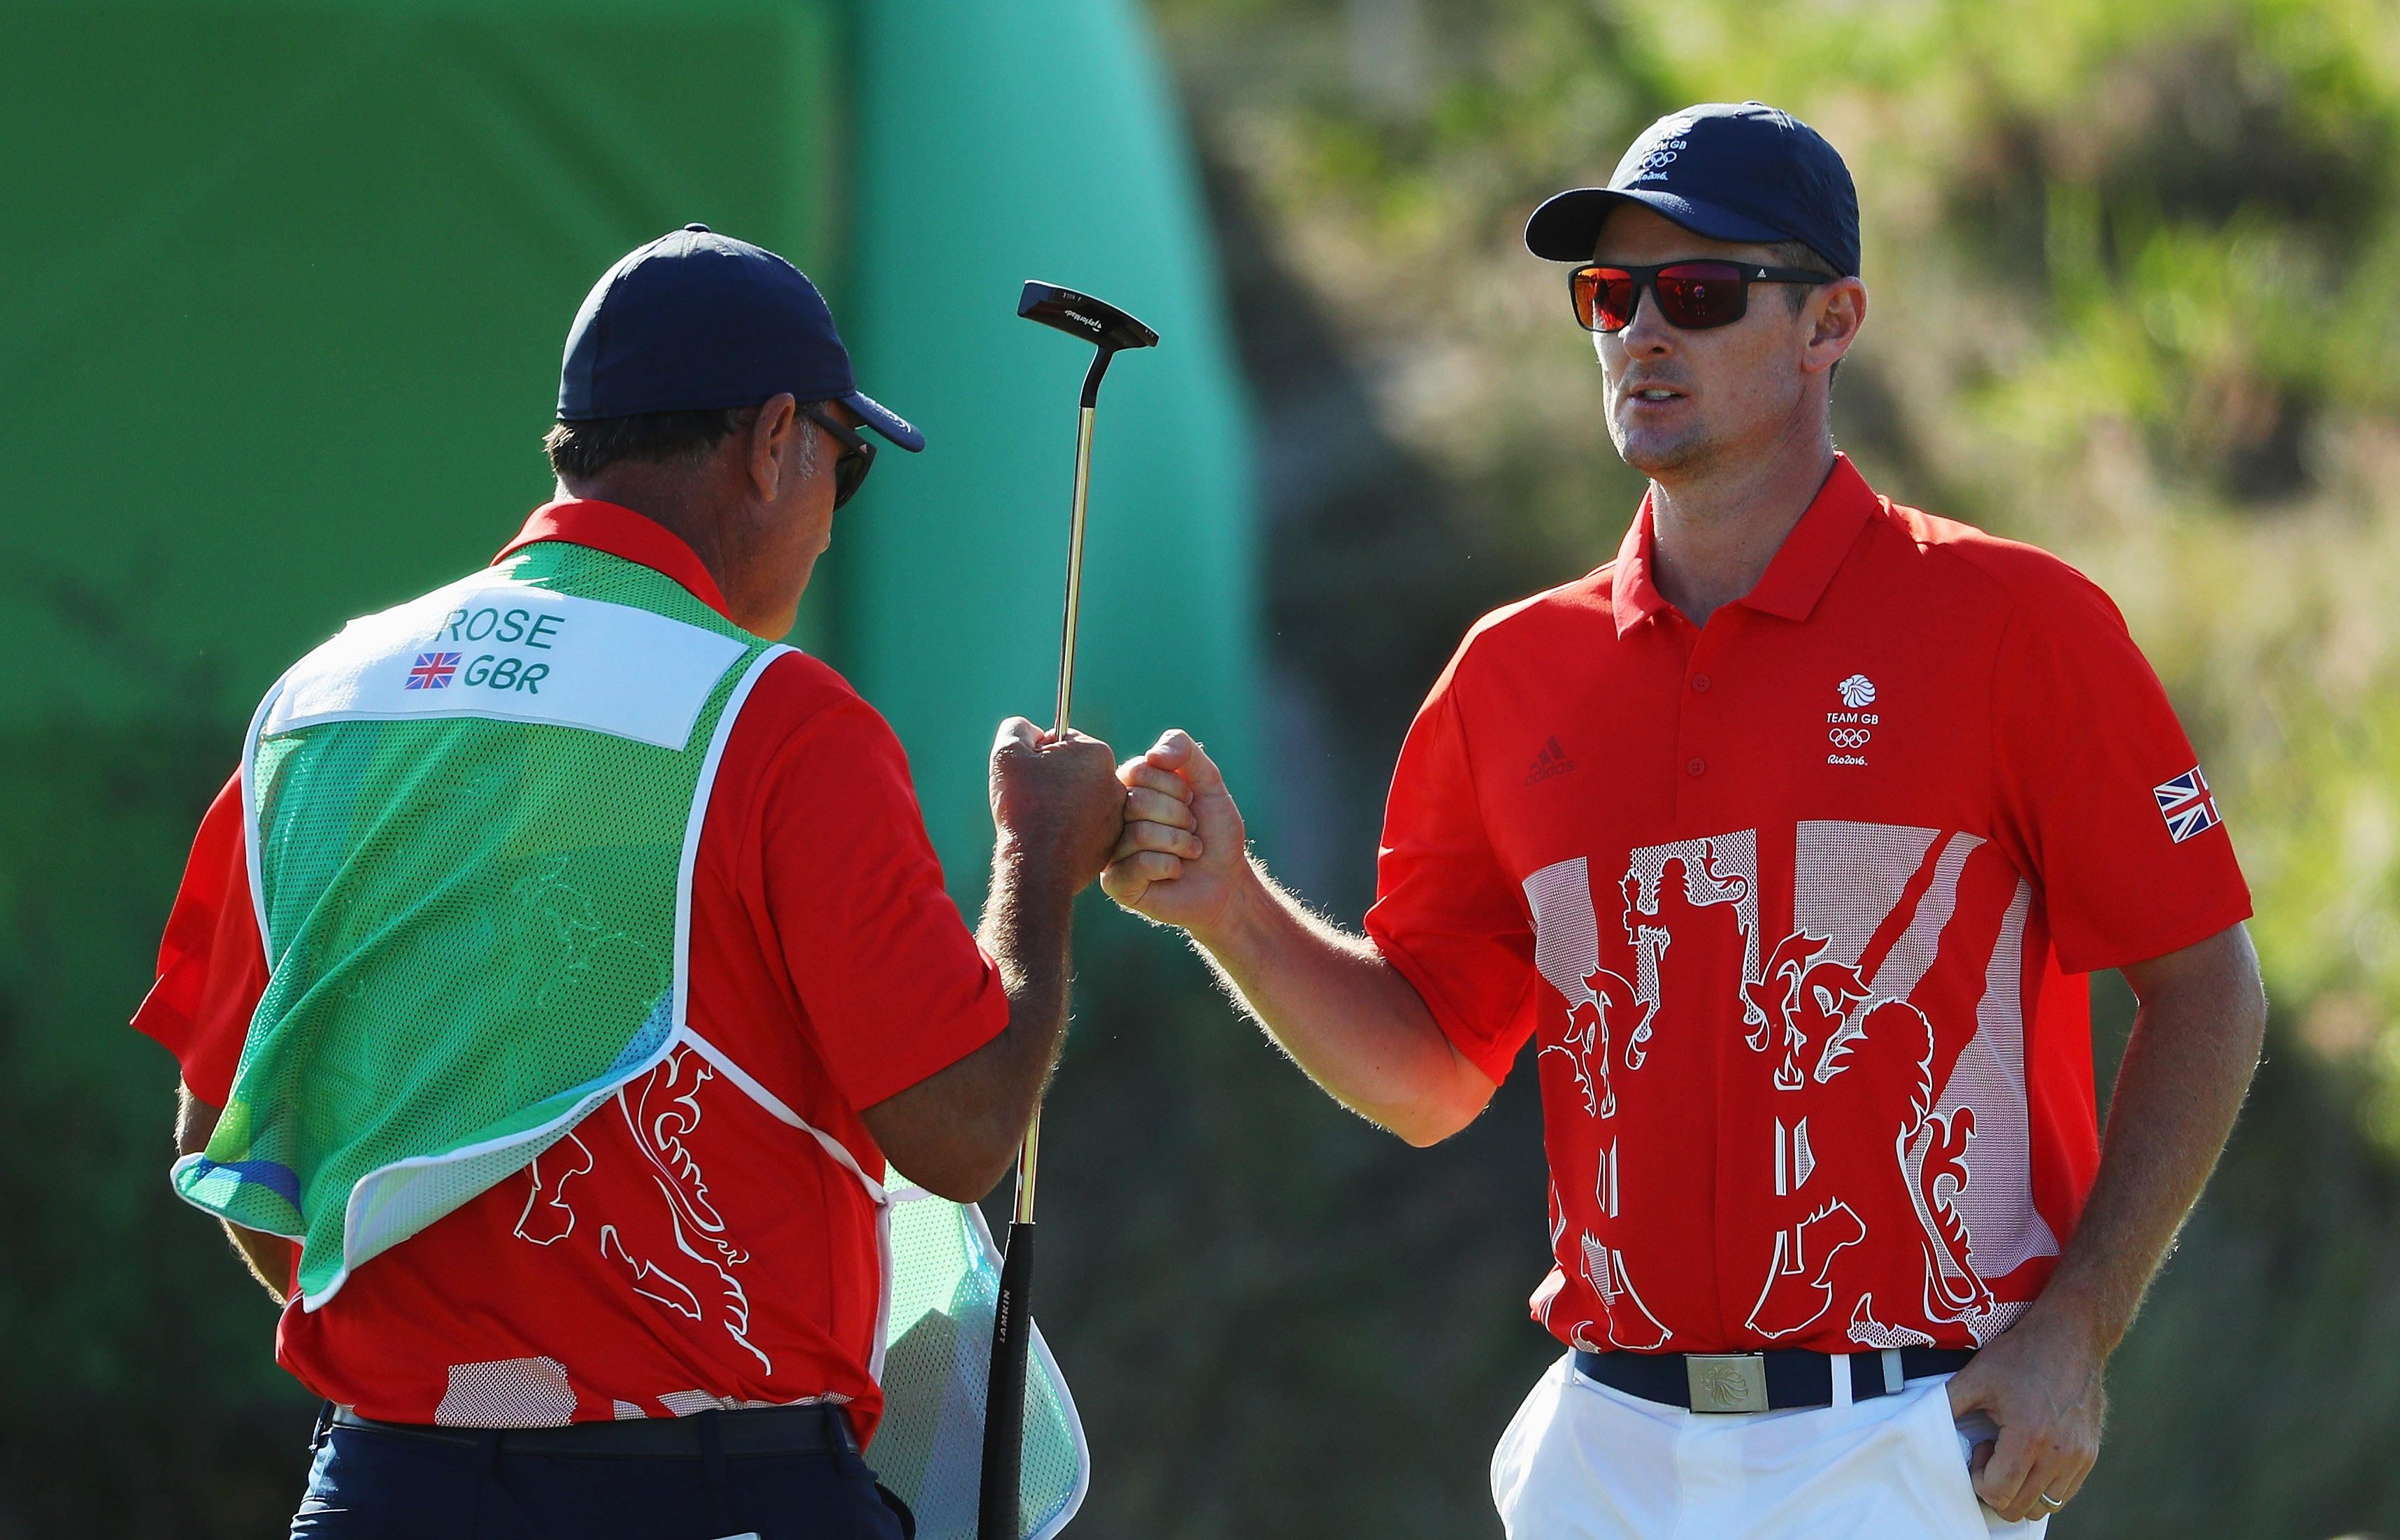 olympics golf live stream watch online round 4 august 14th. Black Bedroom Furniture Sets. Home Design Ideas